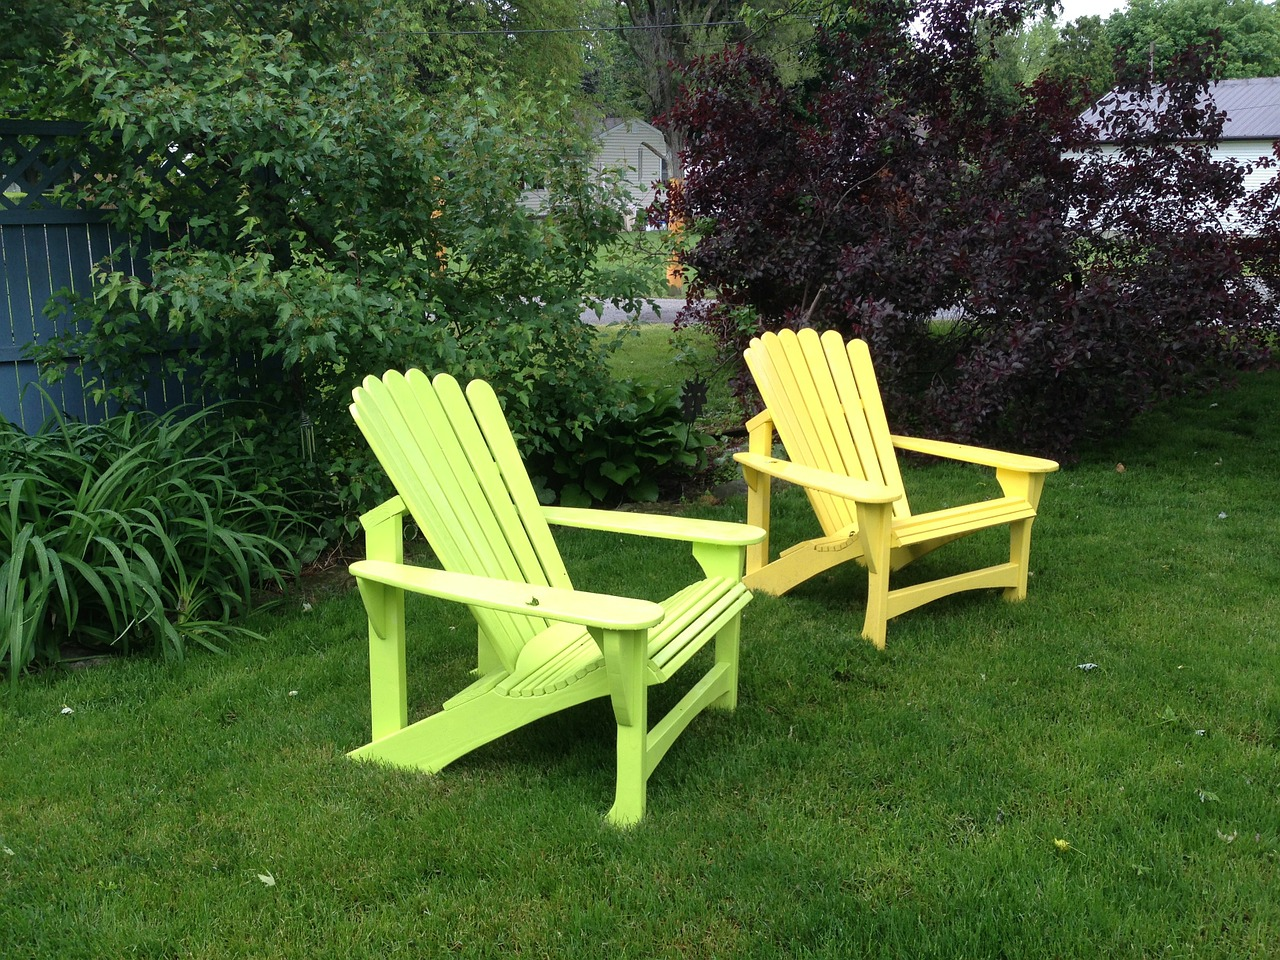 Nothing can make your Home Ready for Summer quite like Adirondack chairs ... photo by CC user LRMoore on pixabay